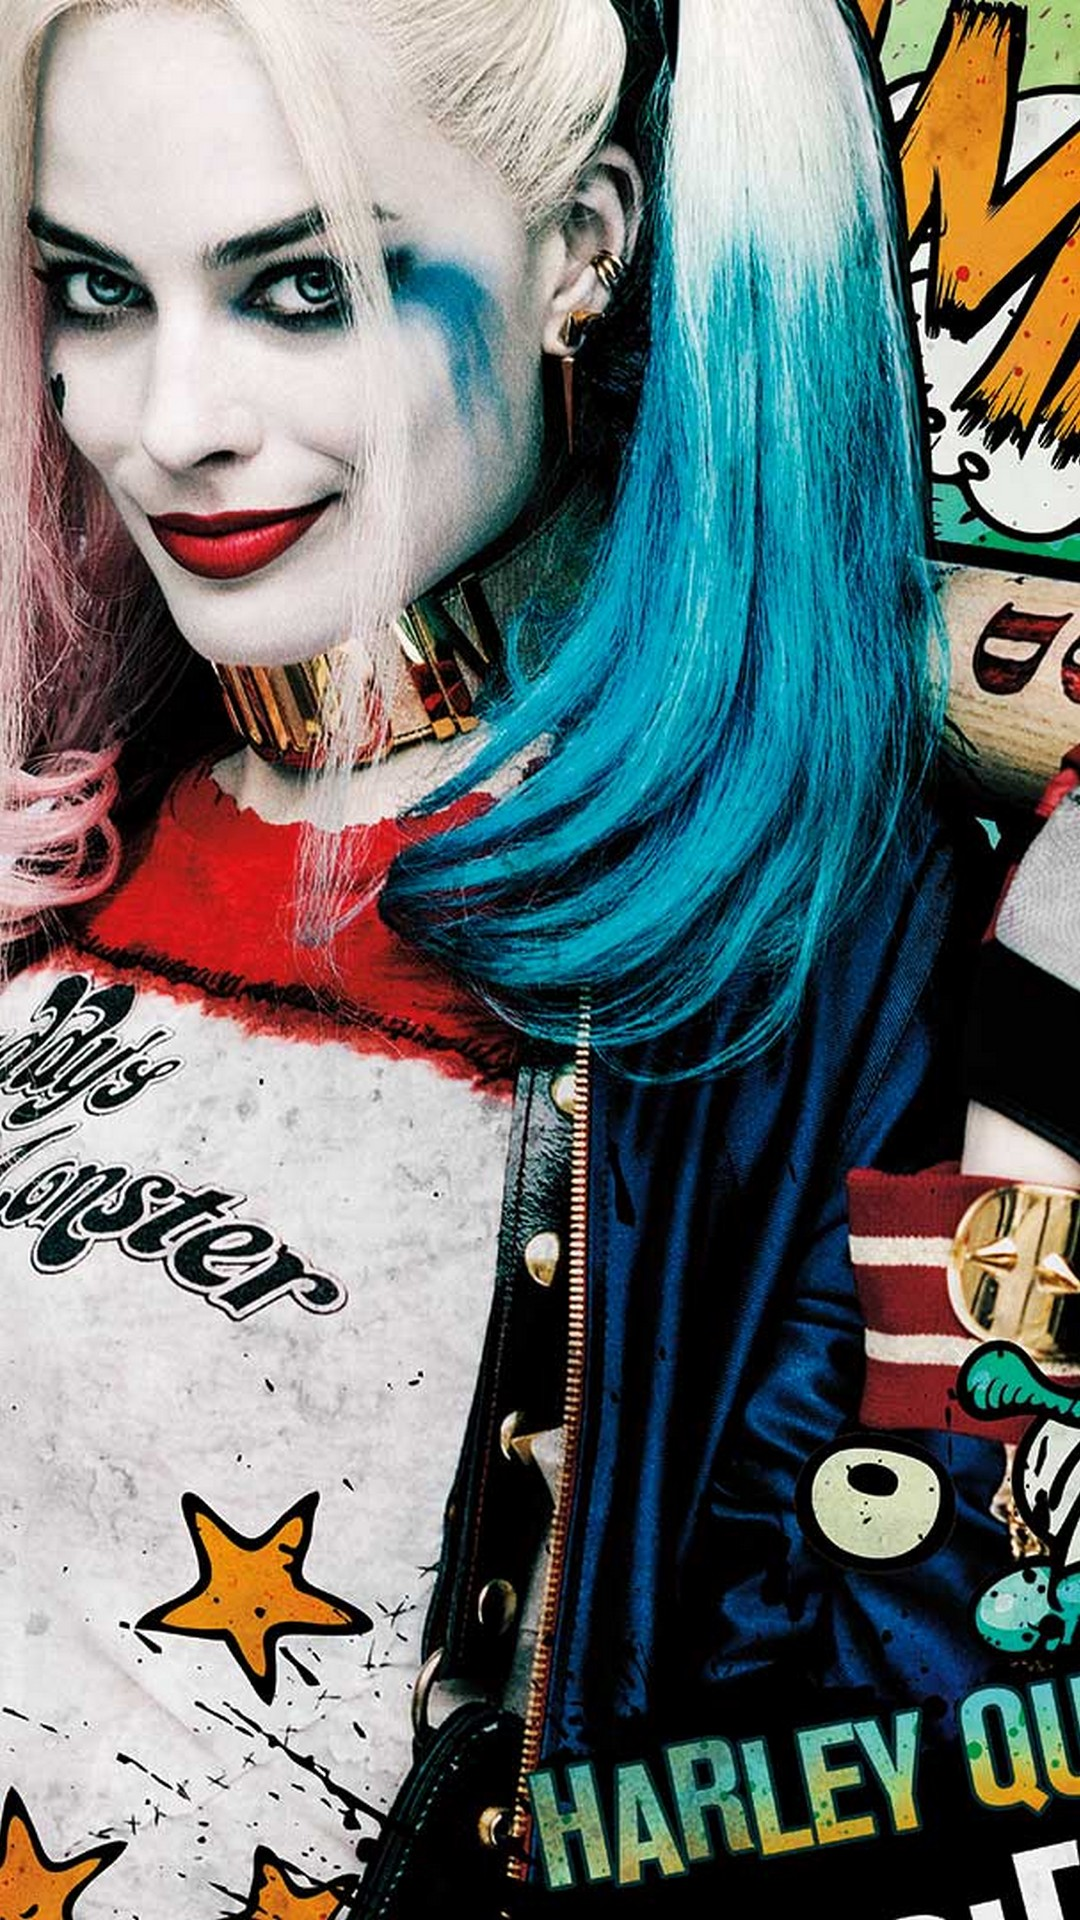 Iphone Wallpaper Hd Harley Quinn Movie With Image Resolution Android Harley Quinn Wallpaper Hd 1080x1920 Download Hd Wallpaper Wallpapertip